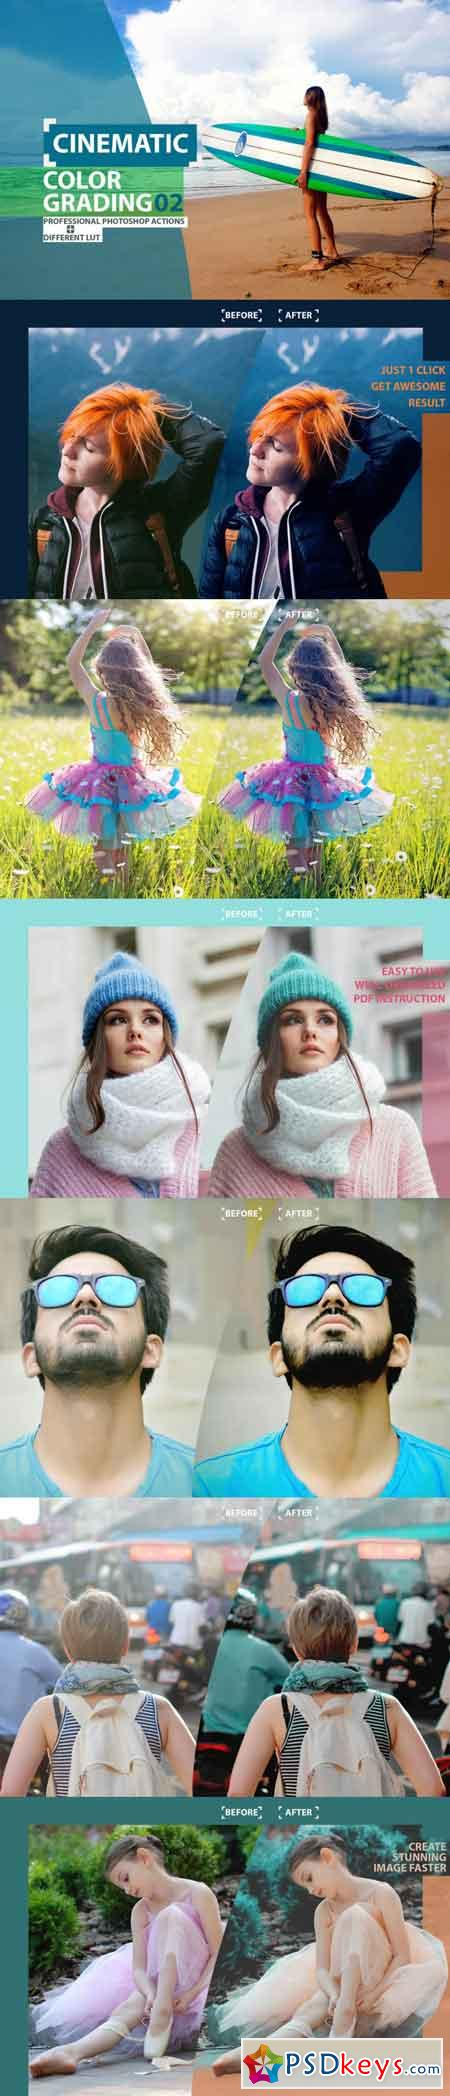 Cinematic Color Grading 02 Premium Photoshop Actions 3505488